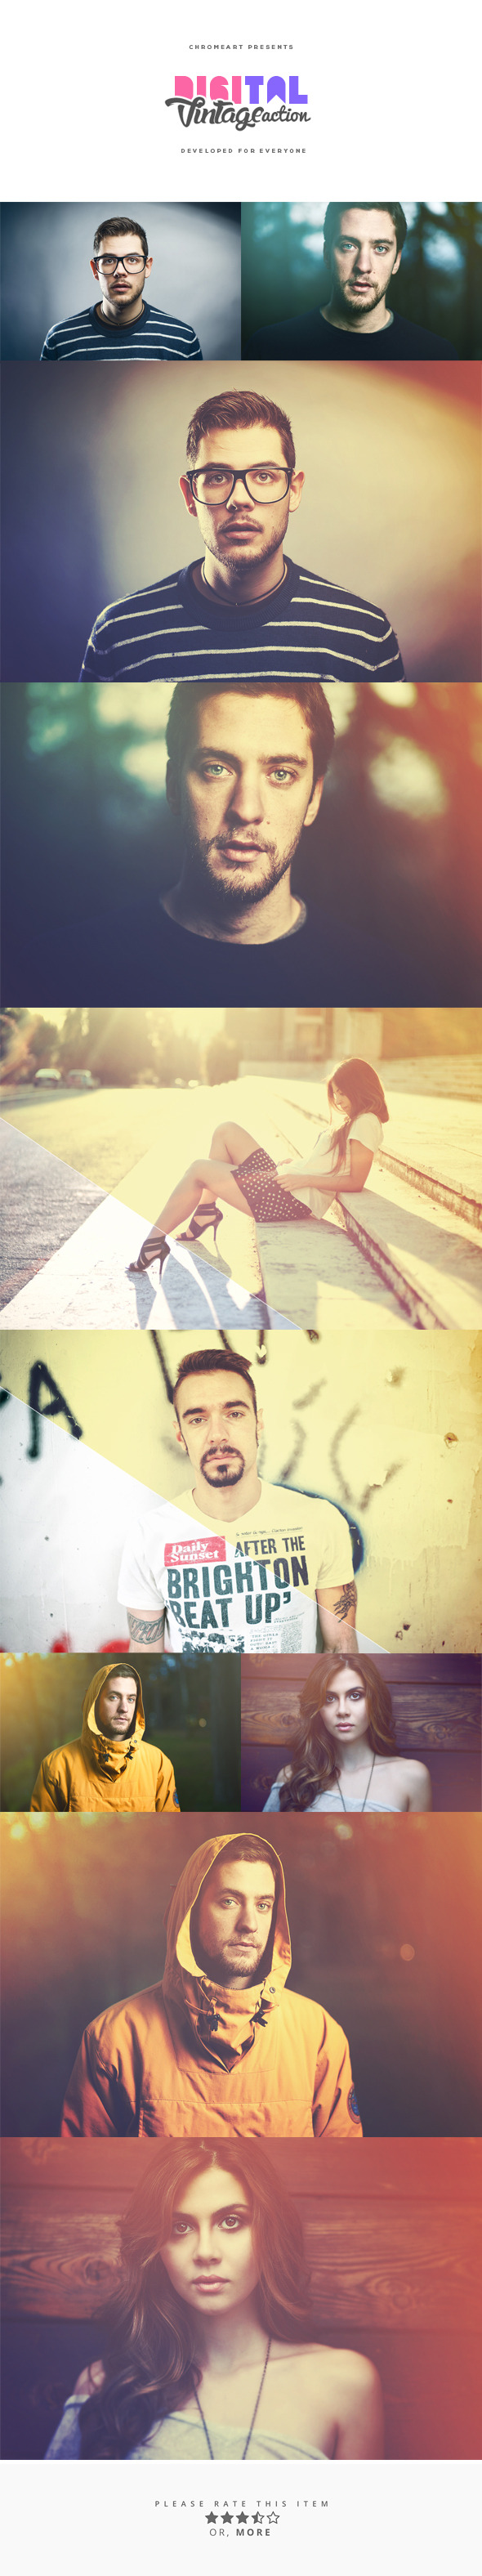 Digital Vintage PS Action - Photo Effects Actions